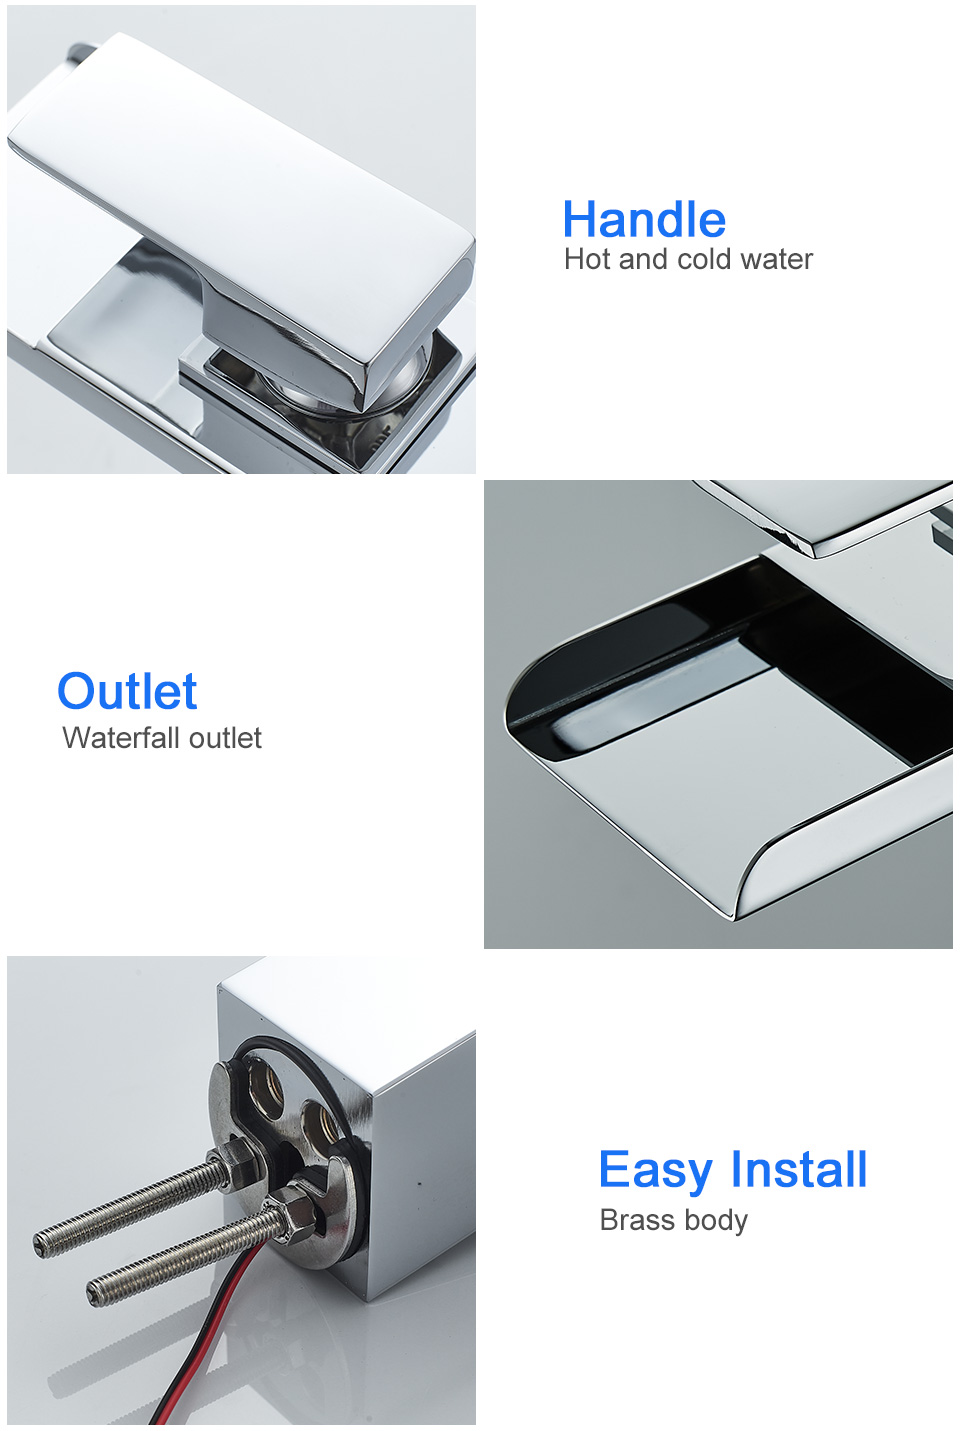 H7eb19f8f0a8a4fd2a609982553eff573A ROVADE Bathroom LED Basin Faucet, Waterfall Bathroom Sink Tap Cold and Hot Mixer Crane (Chrome)